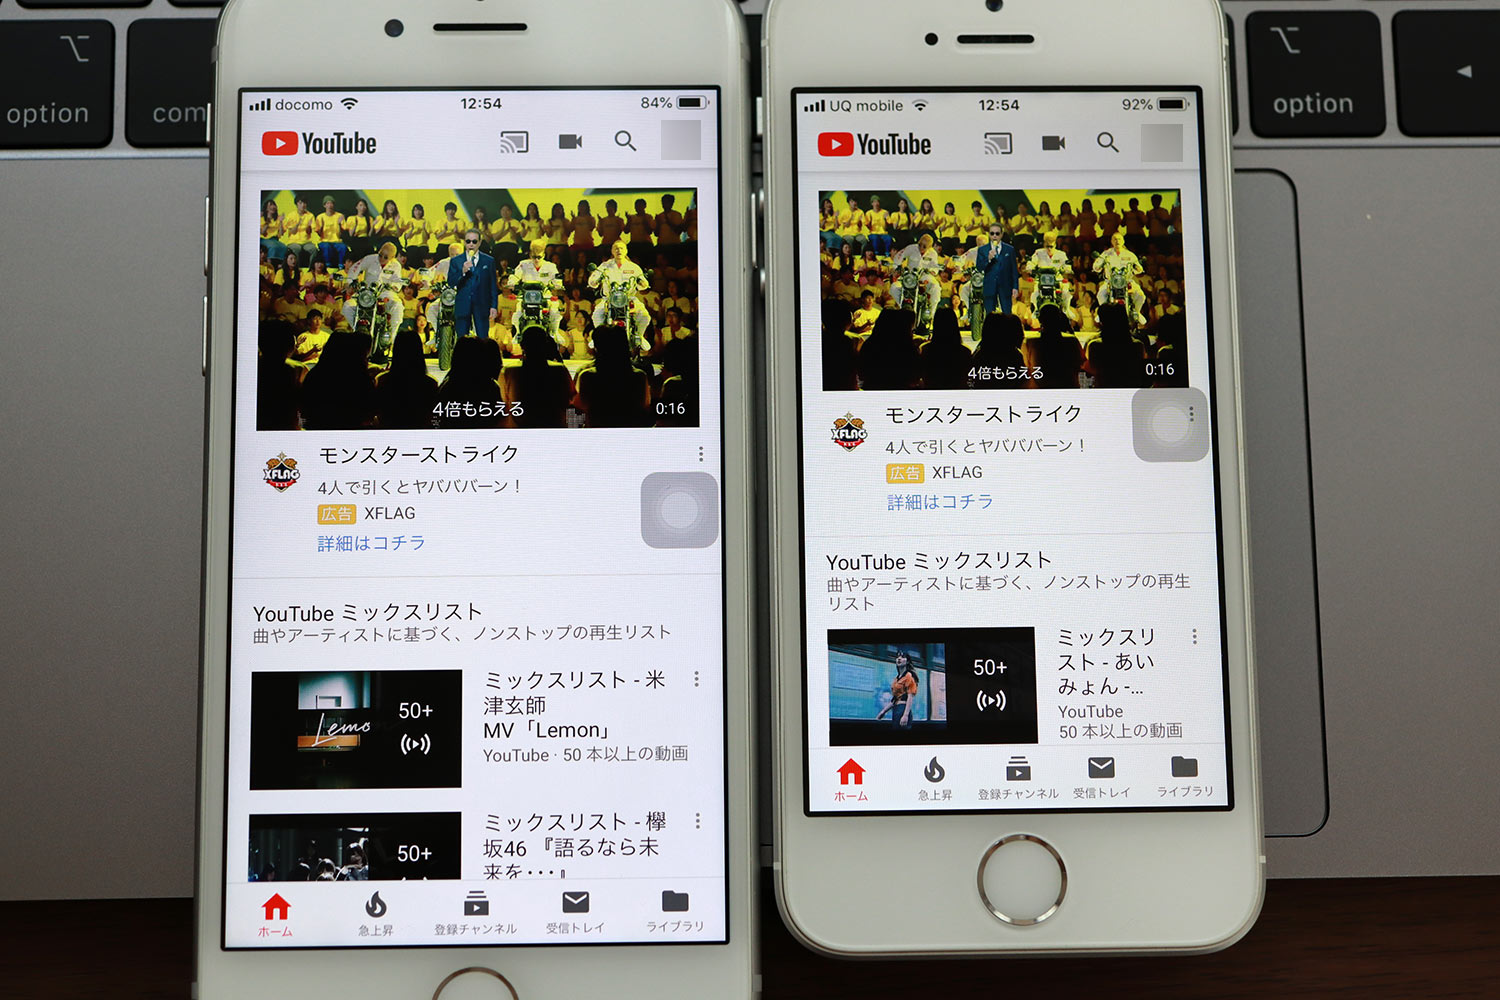 Youtube iPhone SEとiPhone 7/8 表示の違い